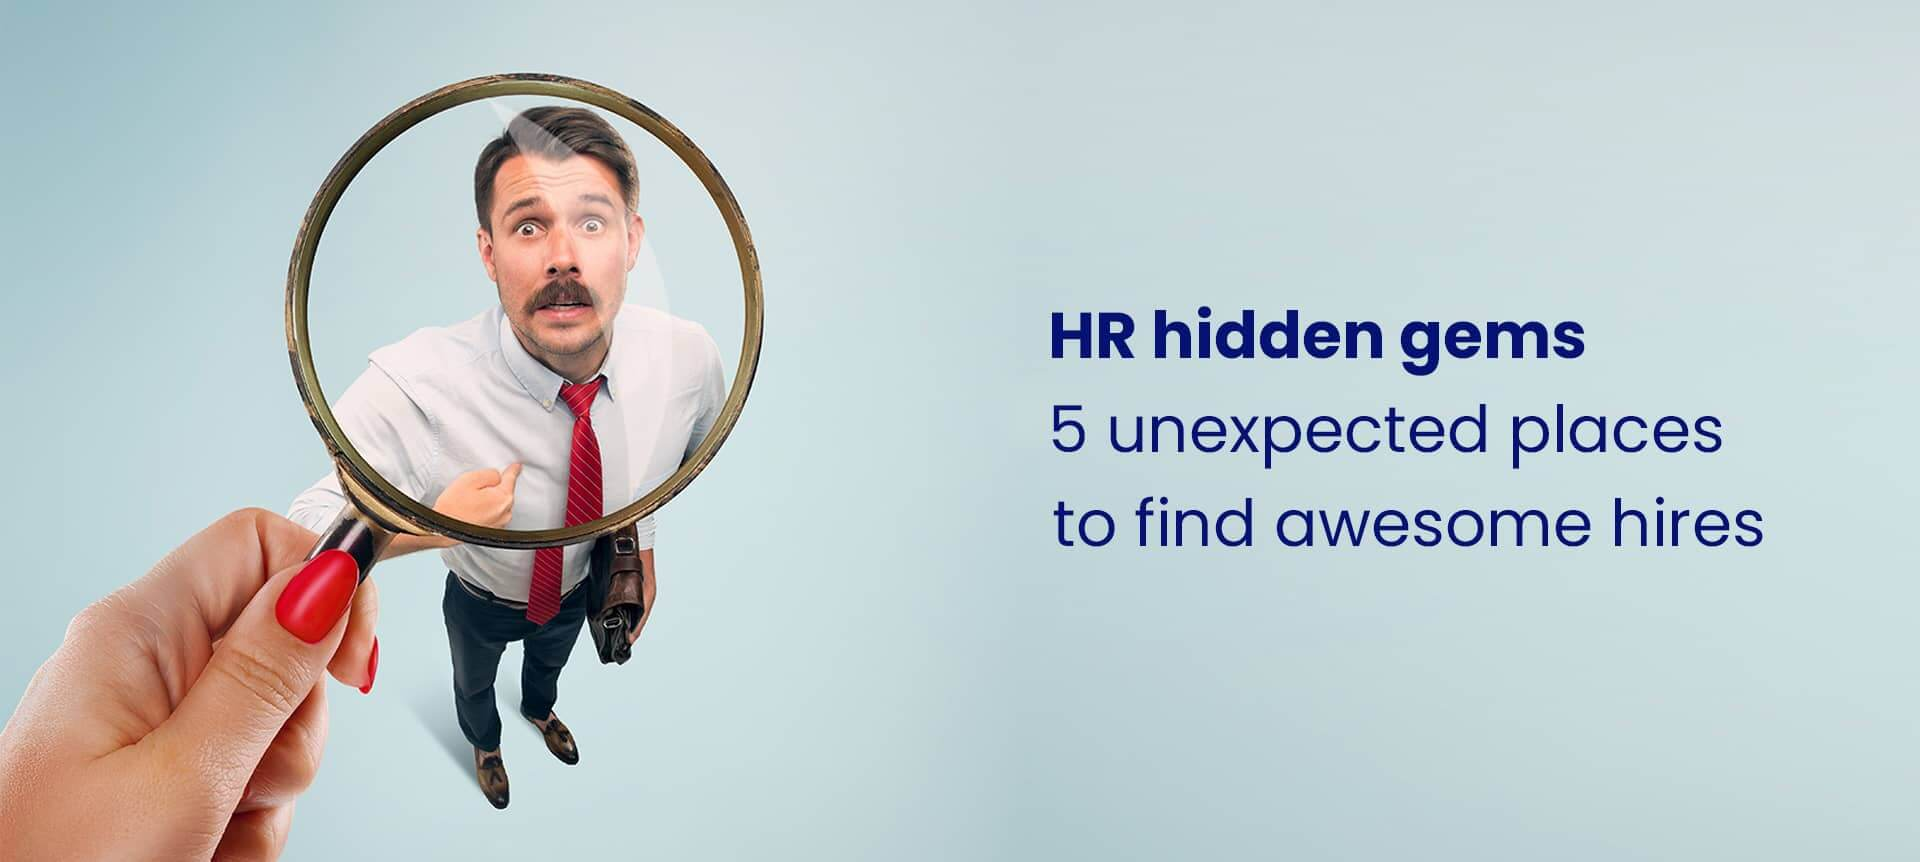 An HR professional looking for top talent in unexpected places